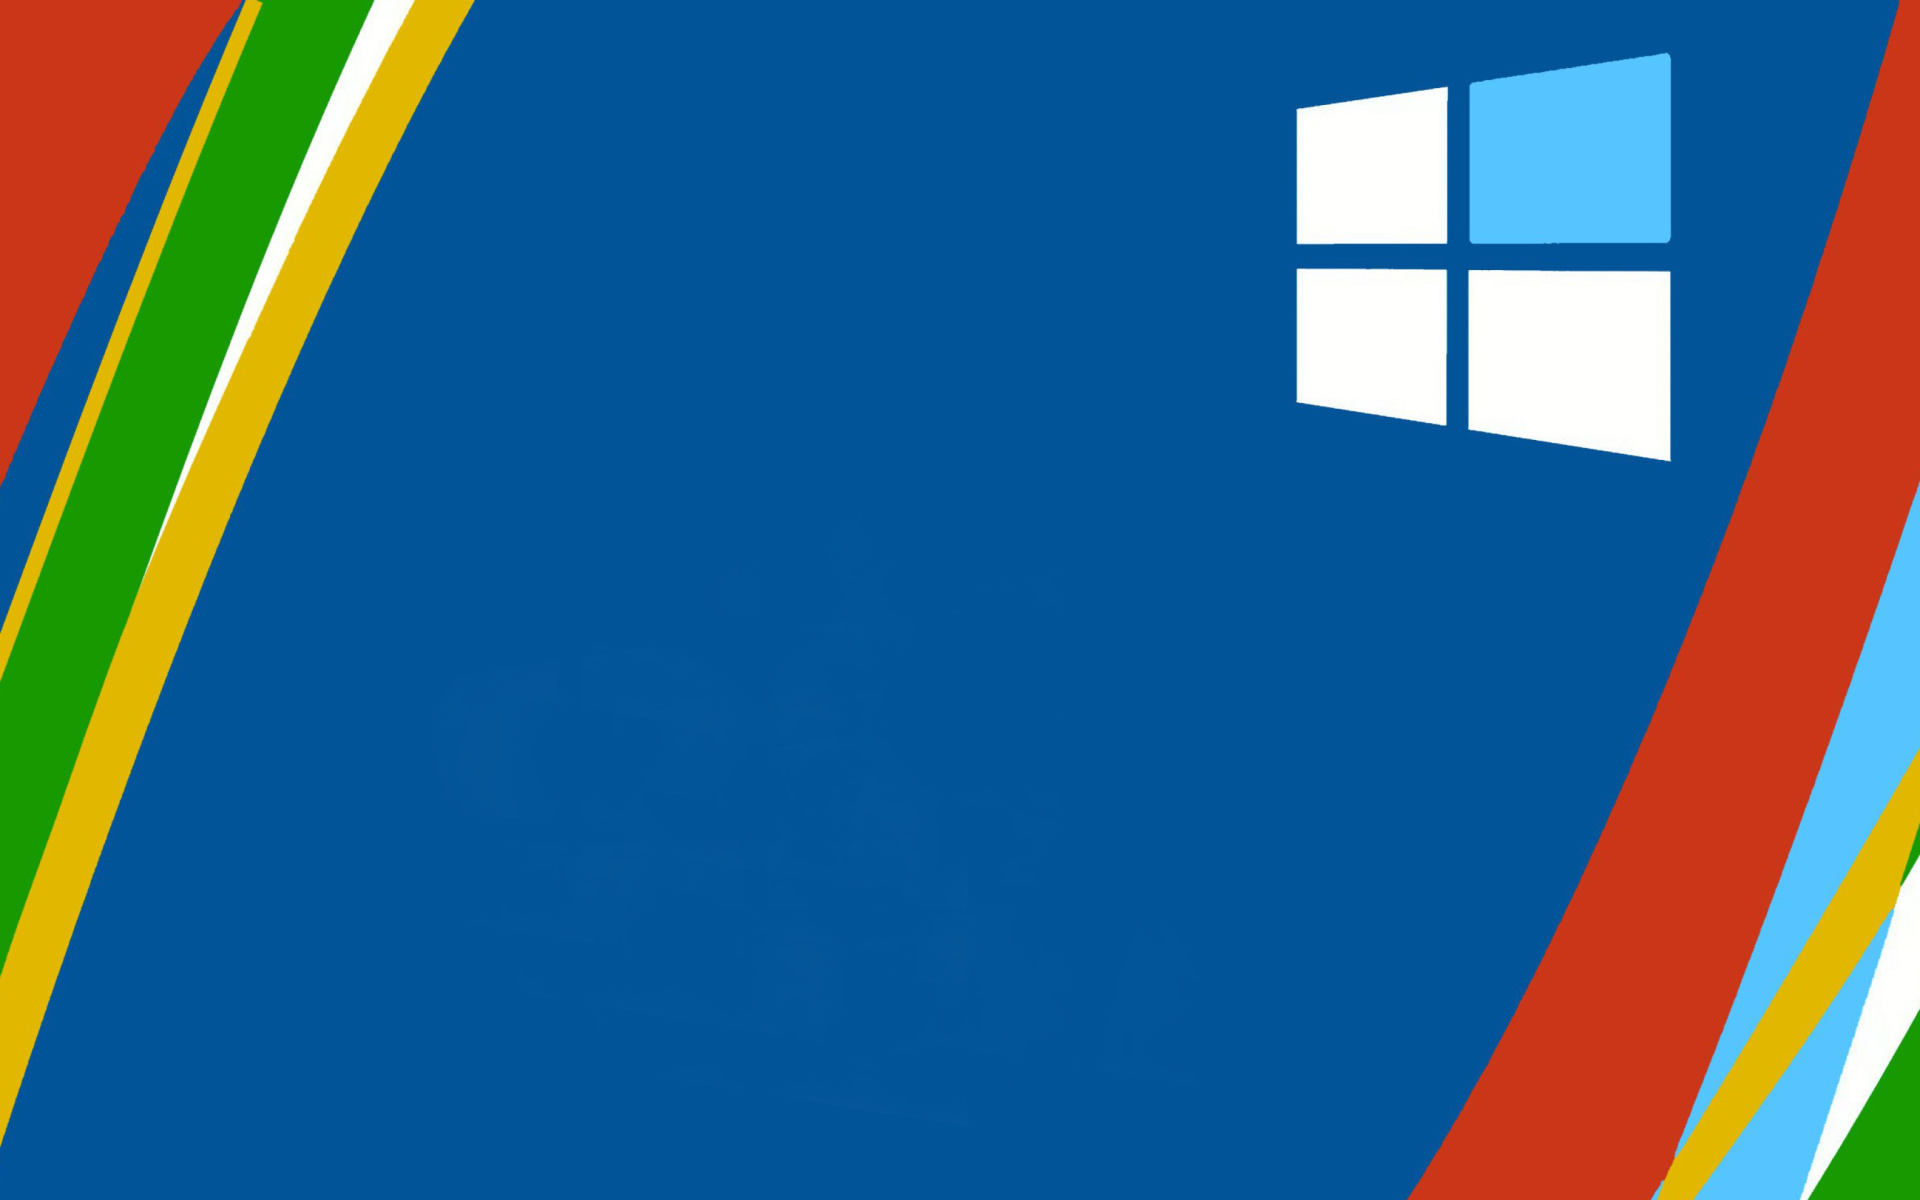 Windows 10 hd personalization fondos de pantalla gratis para widescreen escritorio pc - Fondos de escritorio hd para windows ...